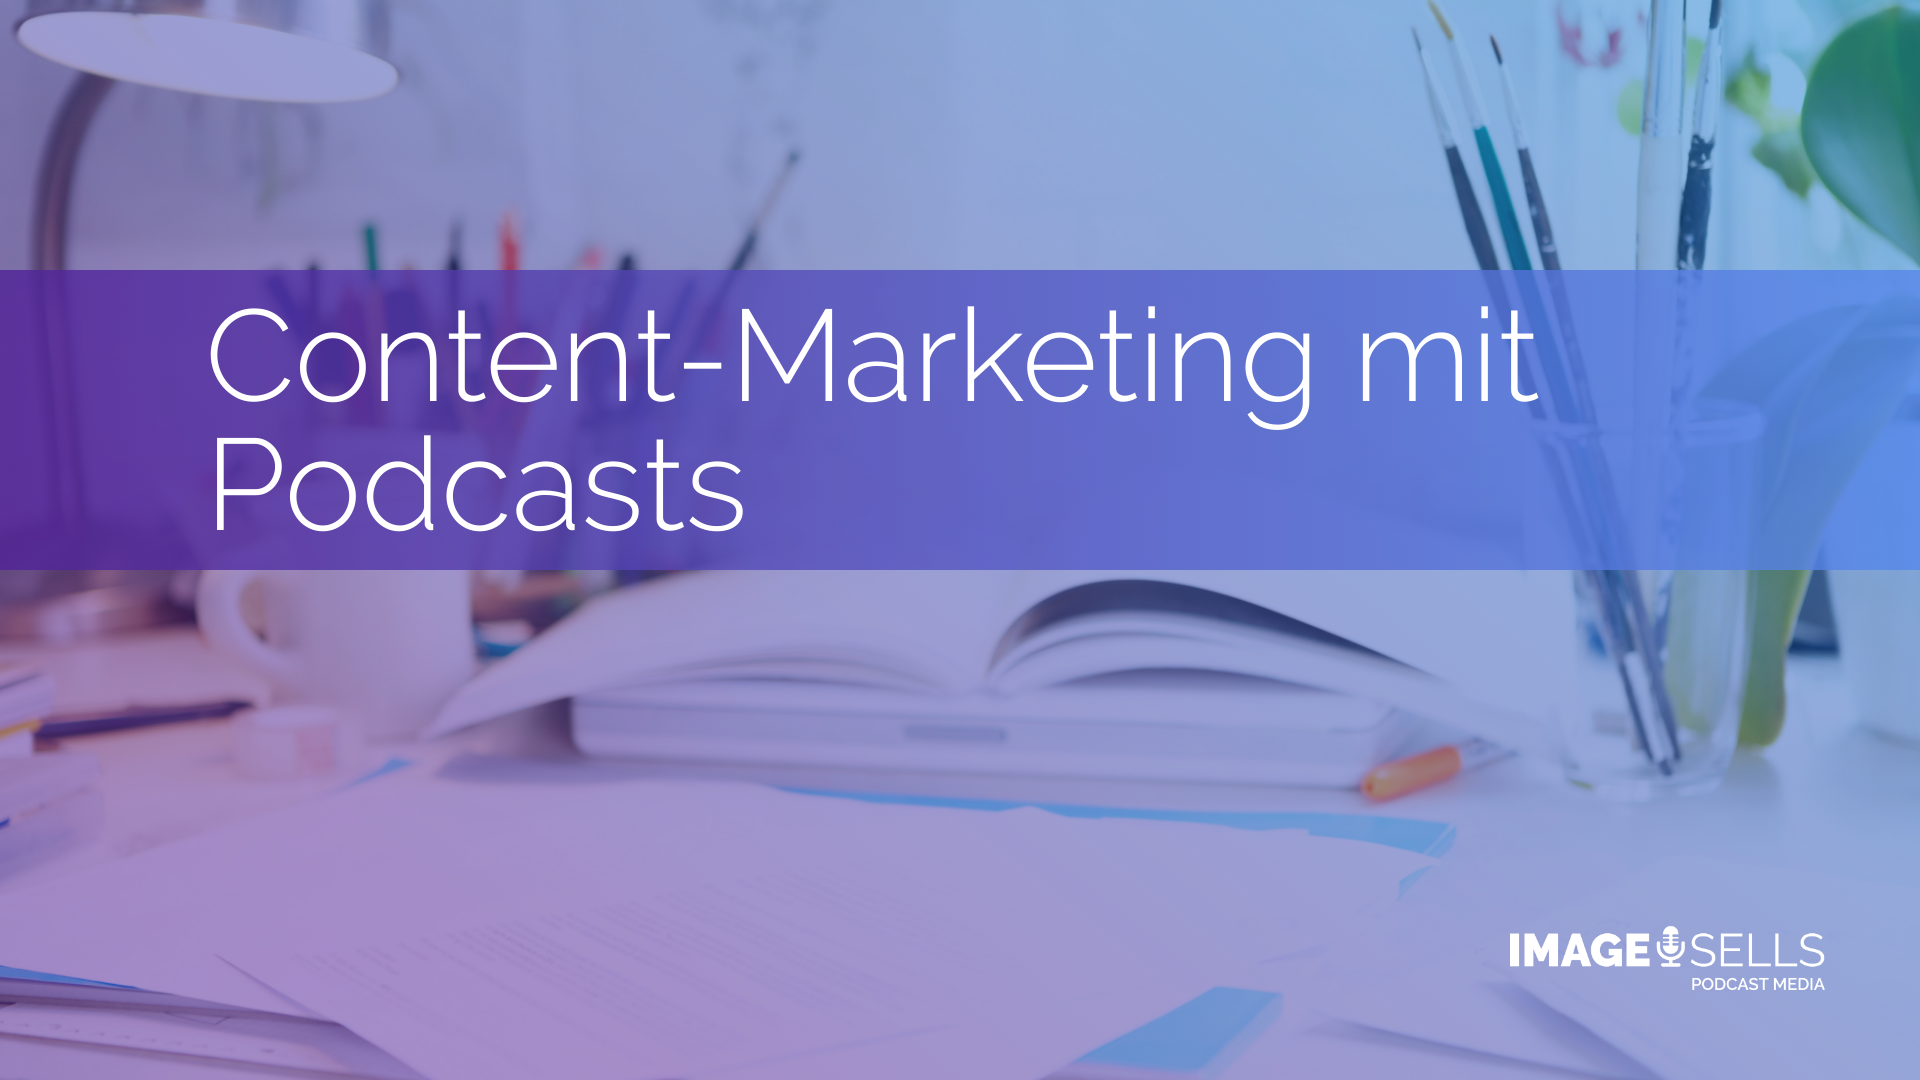 Content-Marketing mit Podcasts